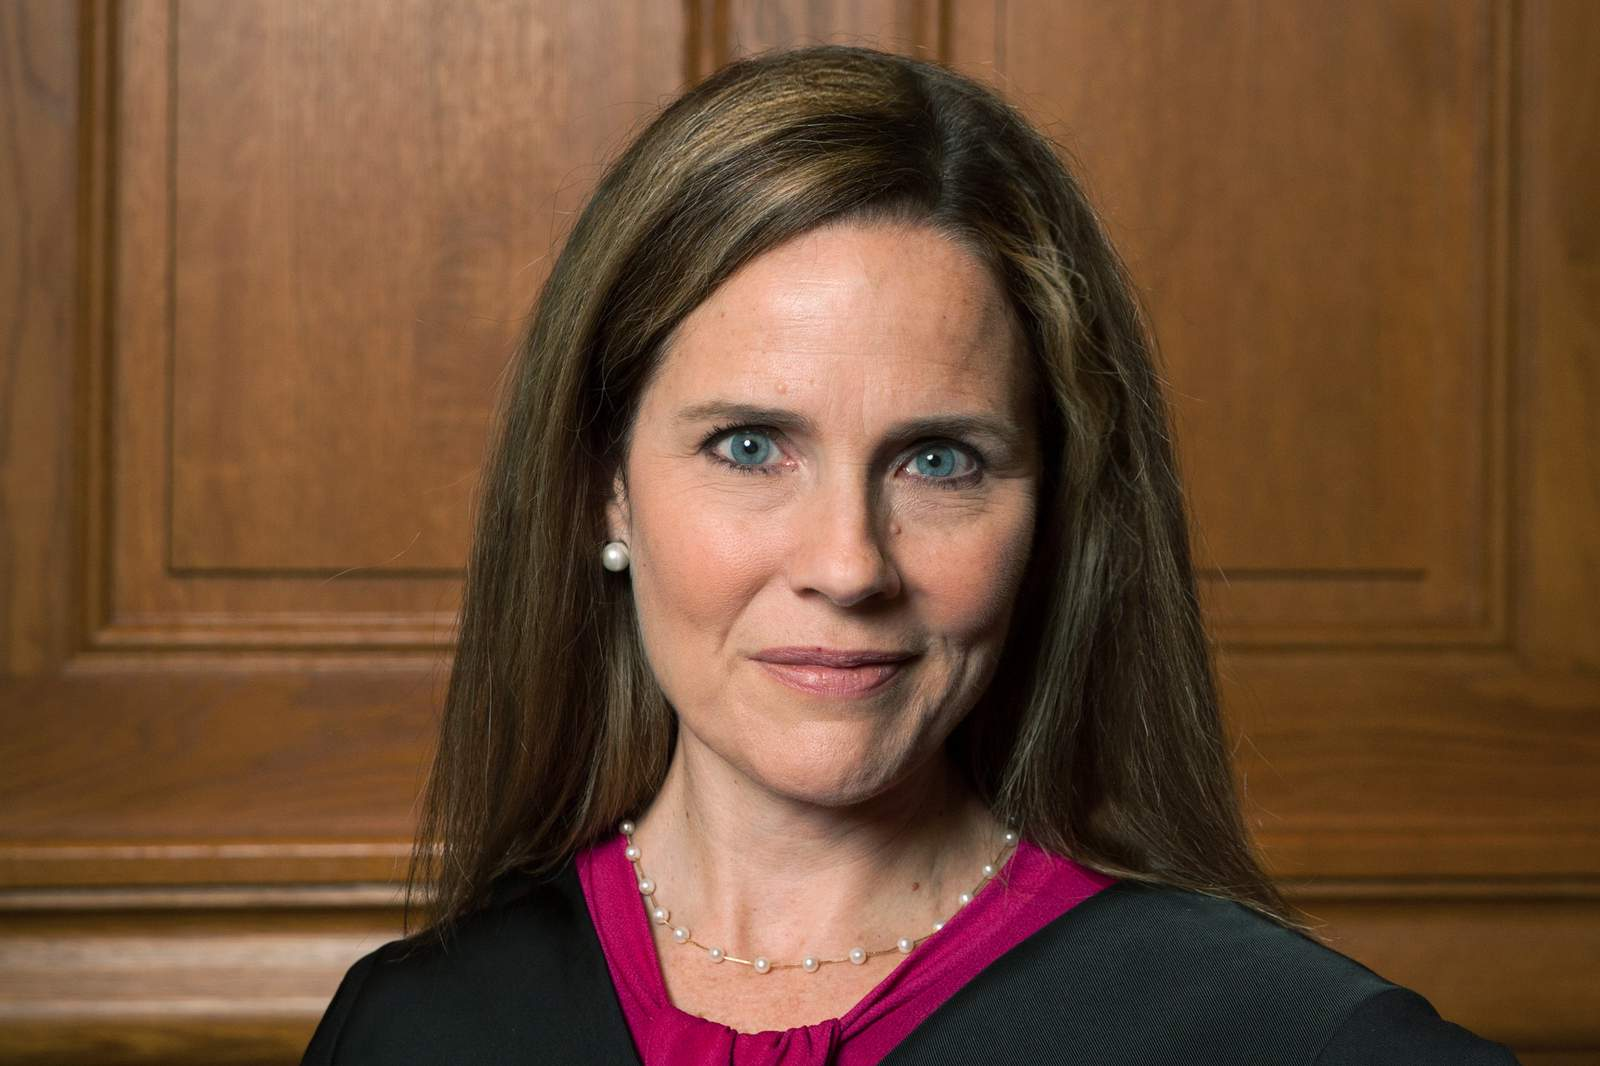 Trump expected to pick Amy Coney Barrett for Supreme Court, report says